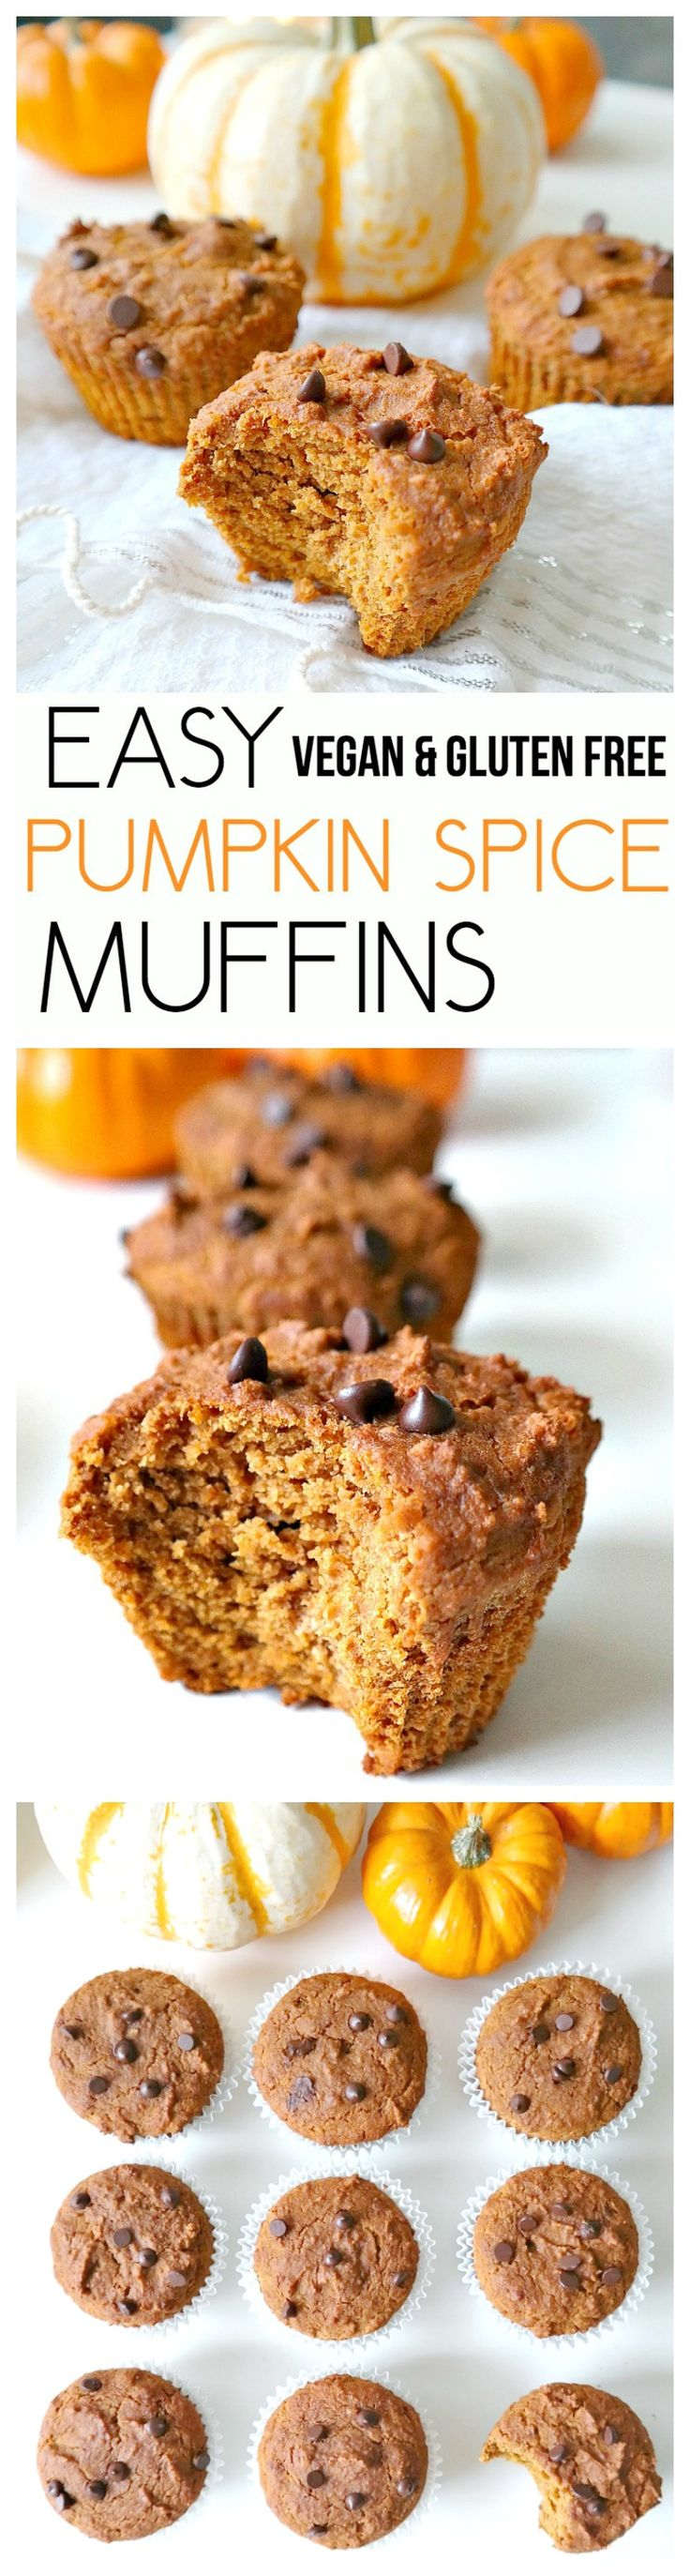 Easy Pumpkin Spice Muffins. Vegan, Gluten Free, Oil Free, Nut Free and Low Fat!! The most flavorful, sweetly spiced, pumpkin muffins. Healthy, simple to make and SO GOOD. From The Glowing Fridge.